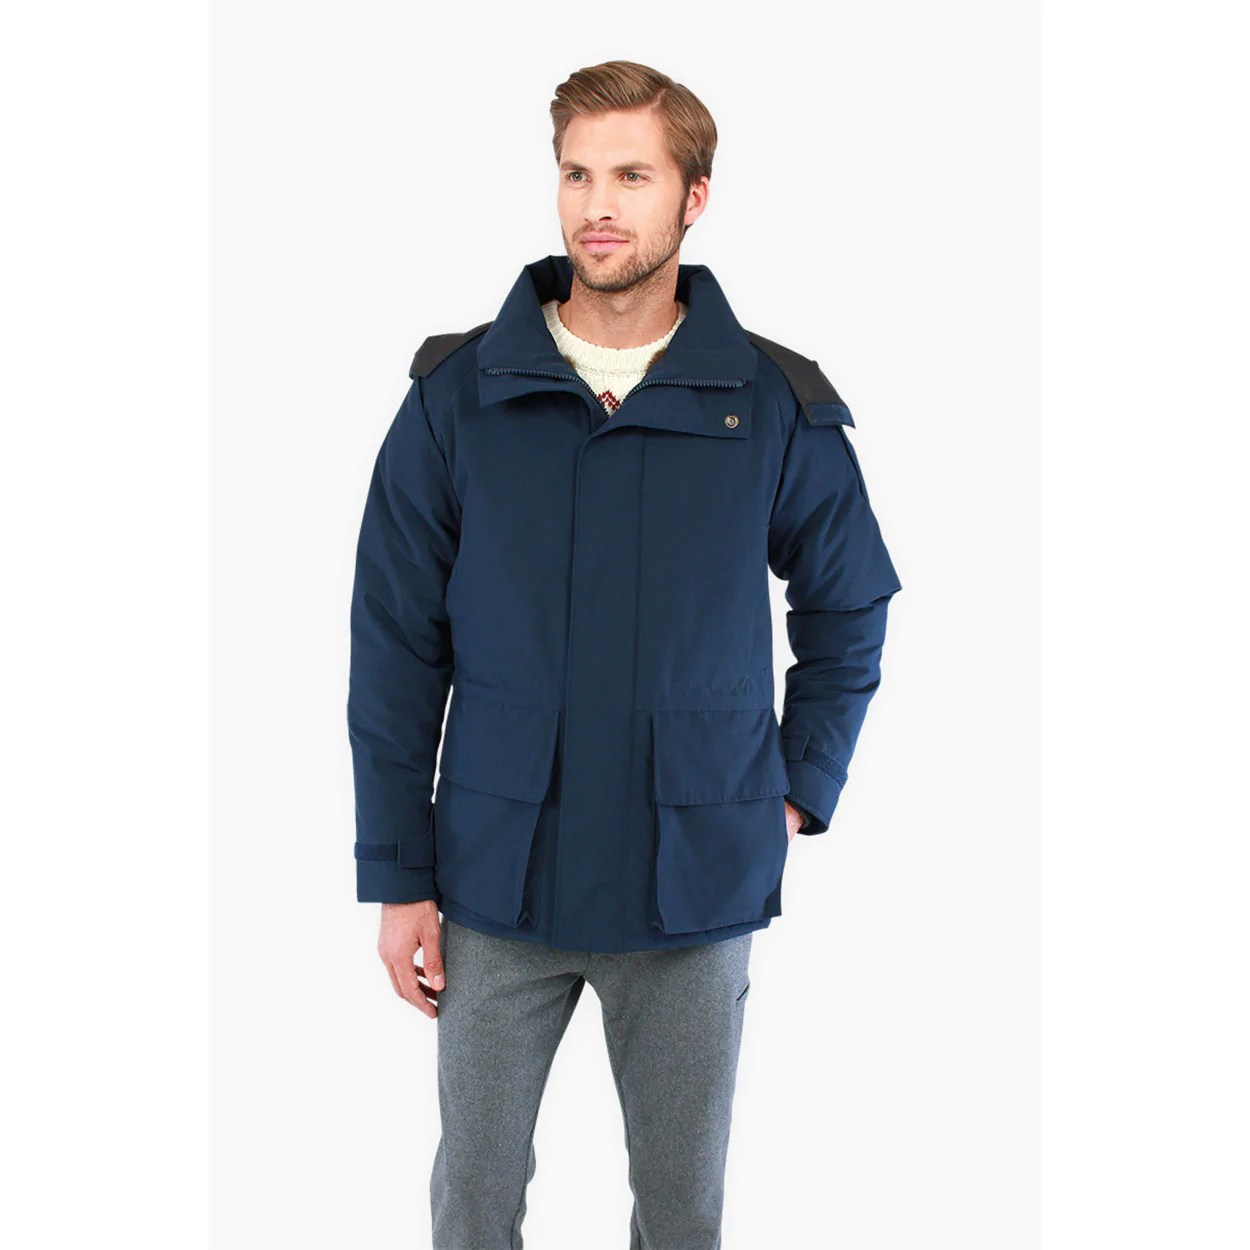 Tom Tailor Denim Men S Tech Parka 411o Long Sleeve Coat Blue Https Thelasthunt Daily Https Thelasthunt